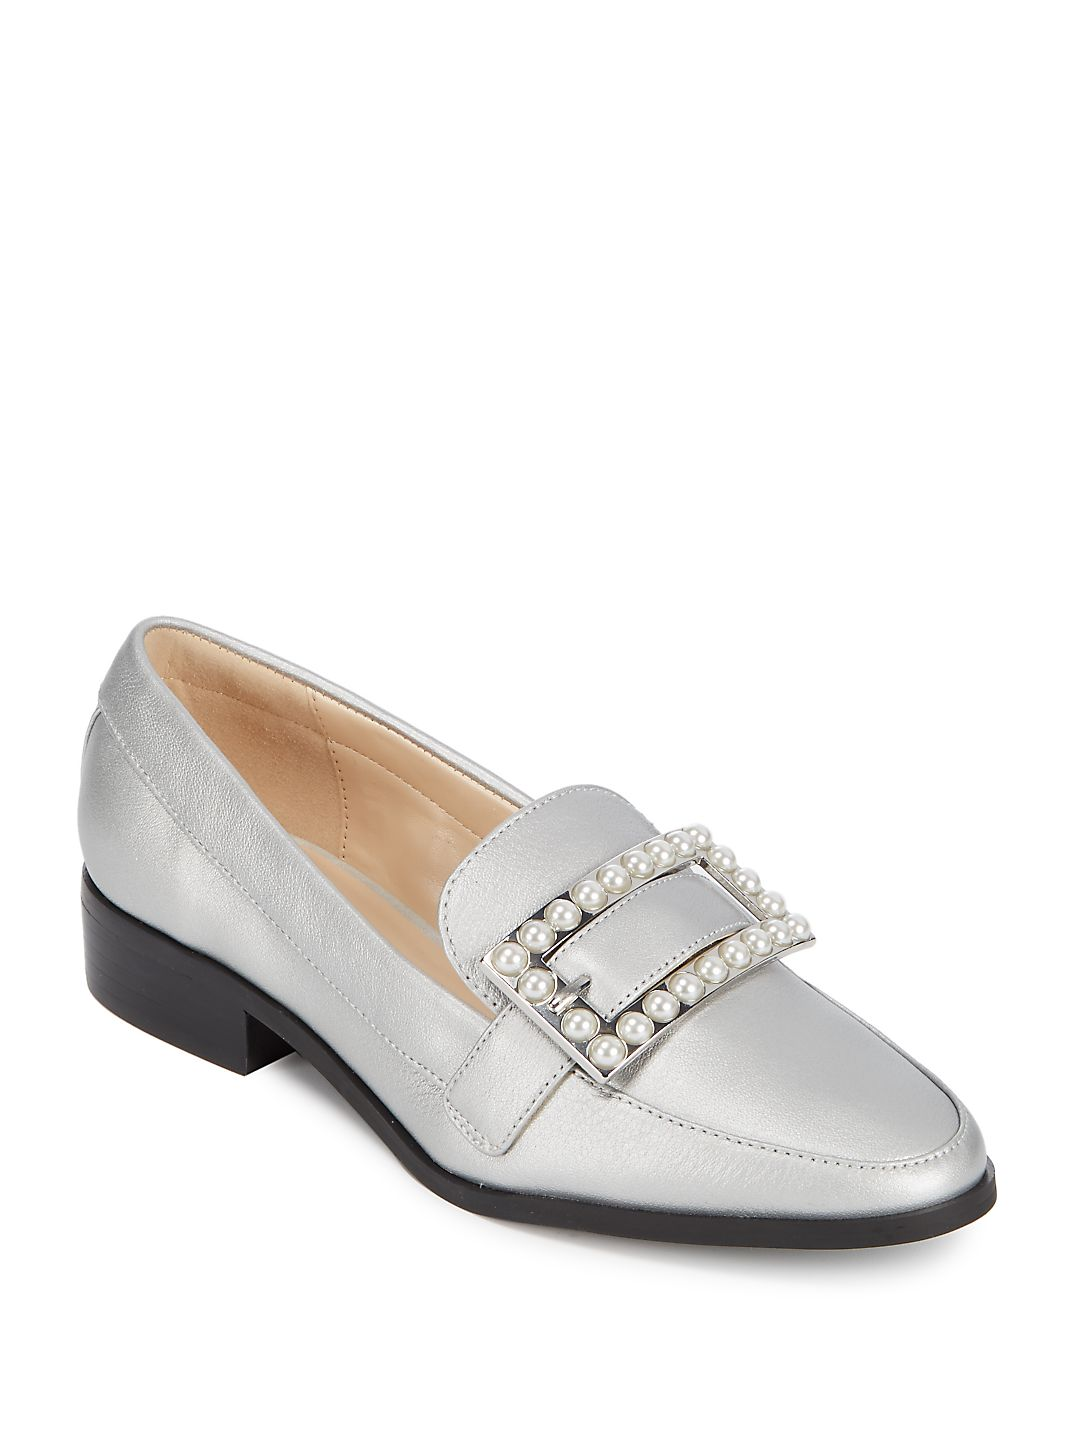 Embellished Buckle-Accented Loafers